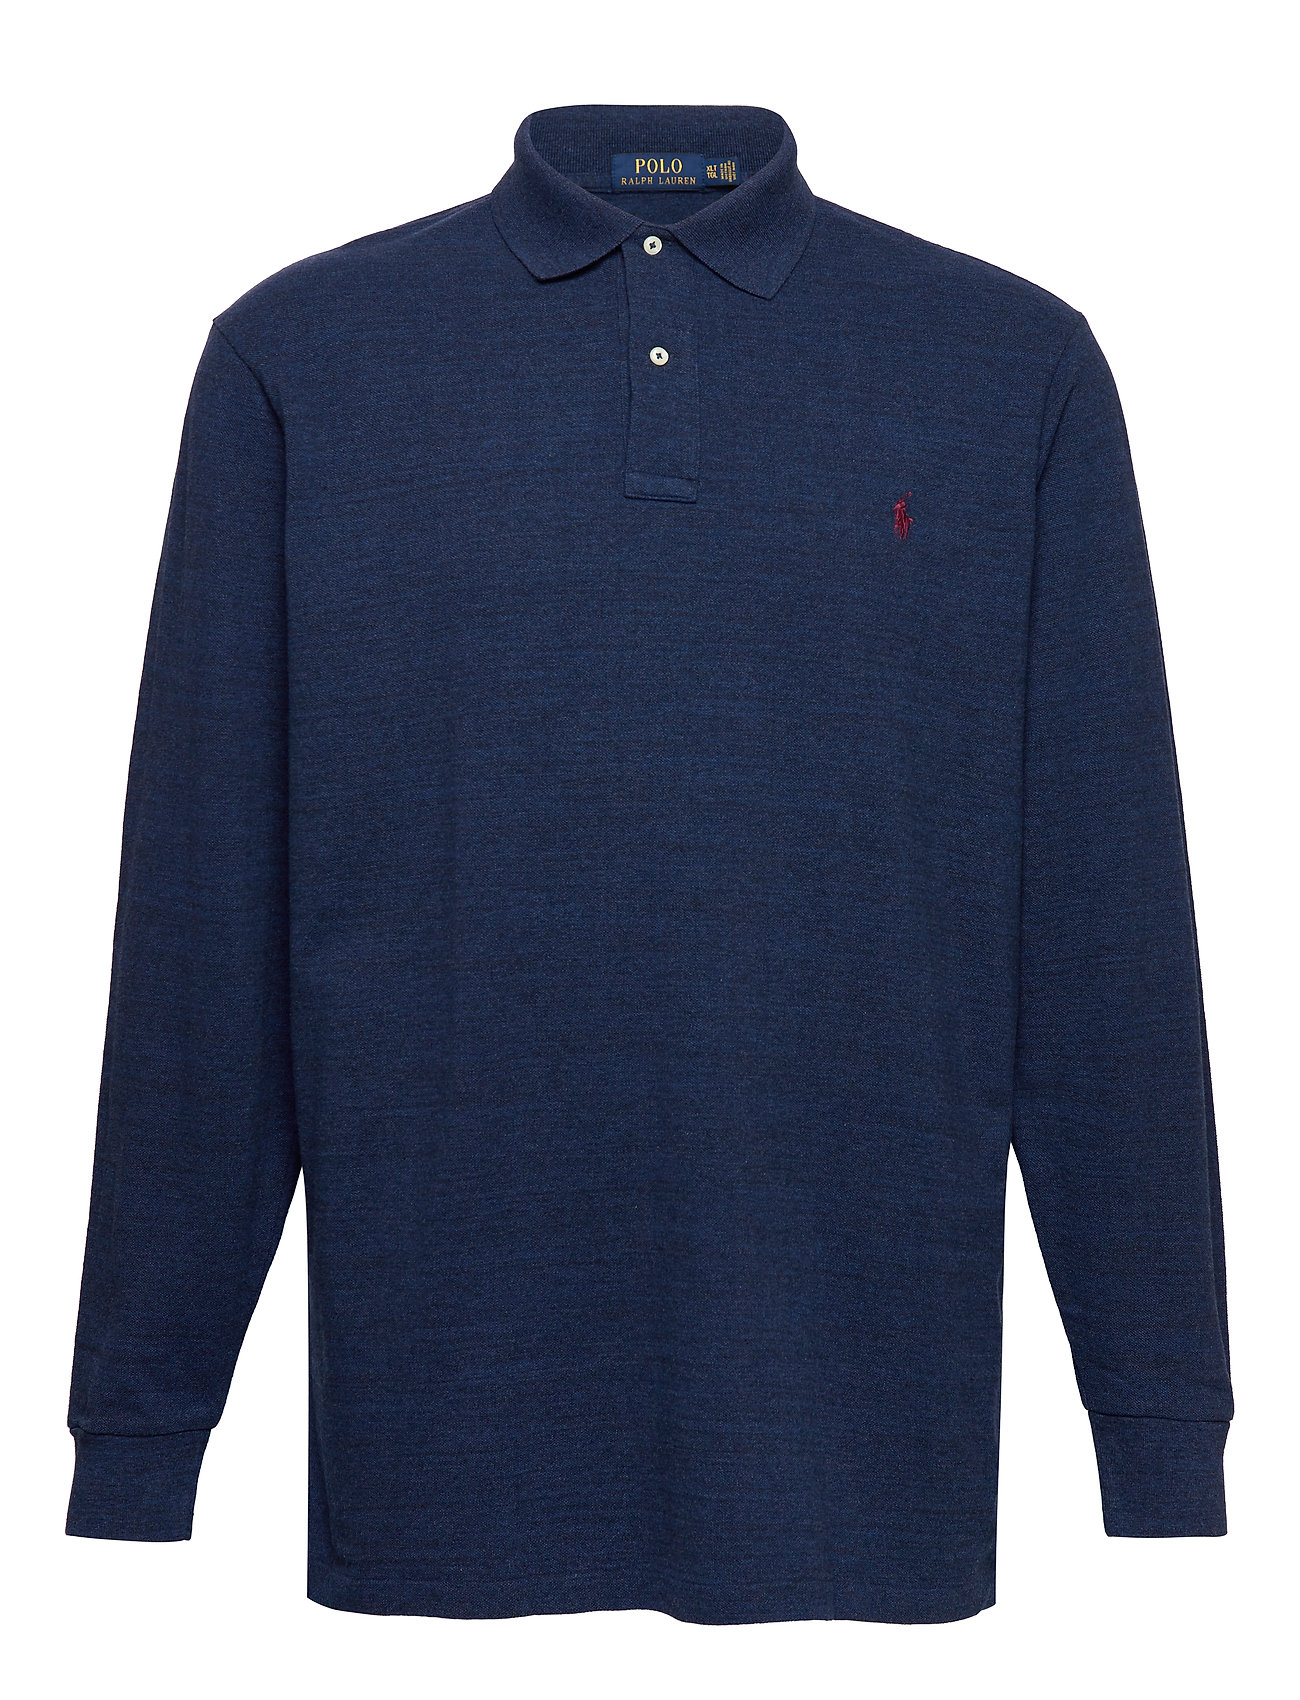 Polo Ralph Lauren Big & Tall Classic Fit Long-Sleeve Polo - MONROE BLUE HEATH